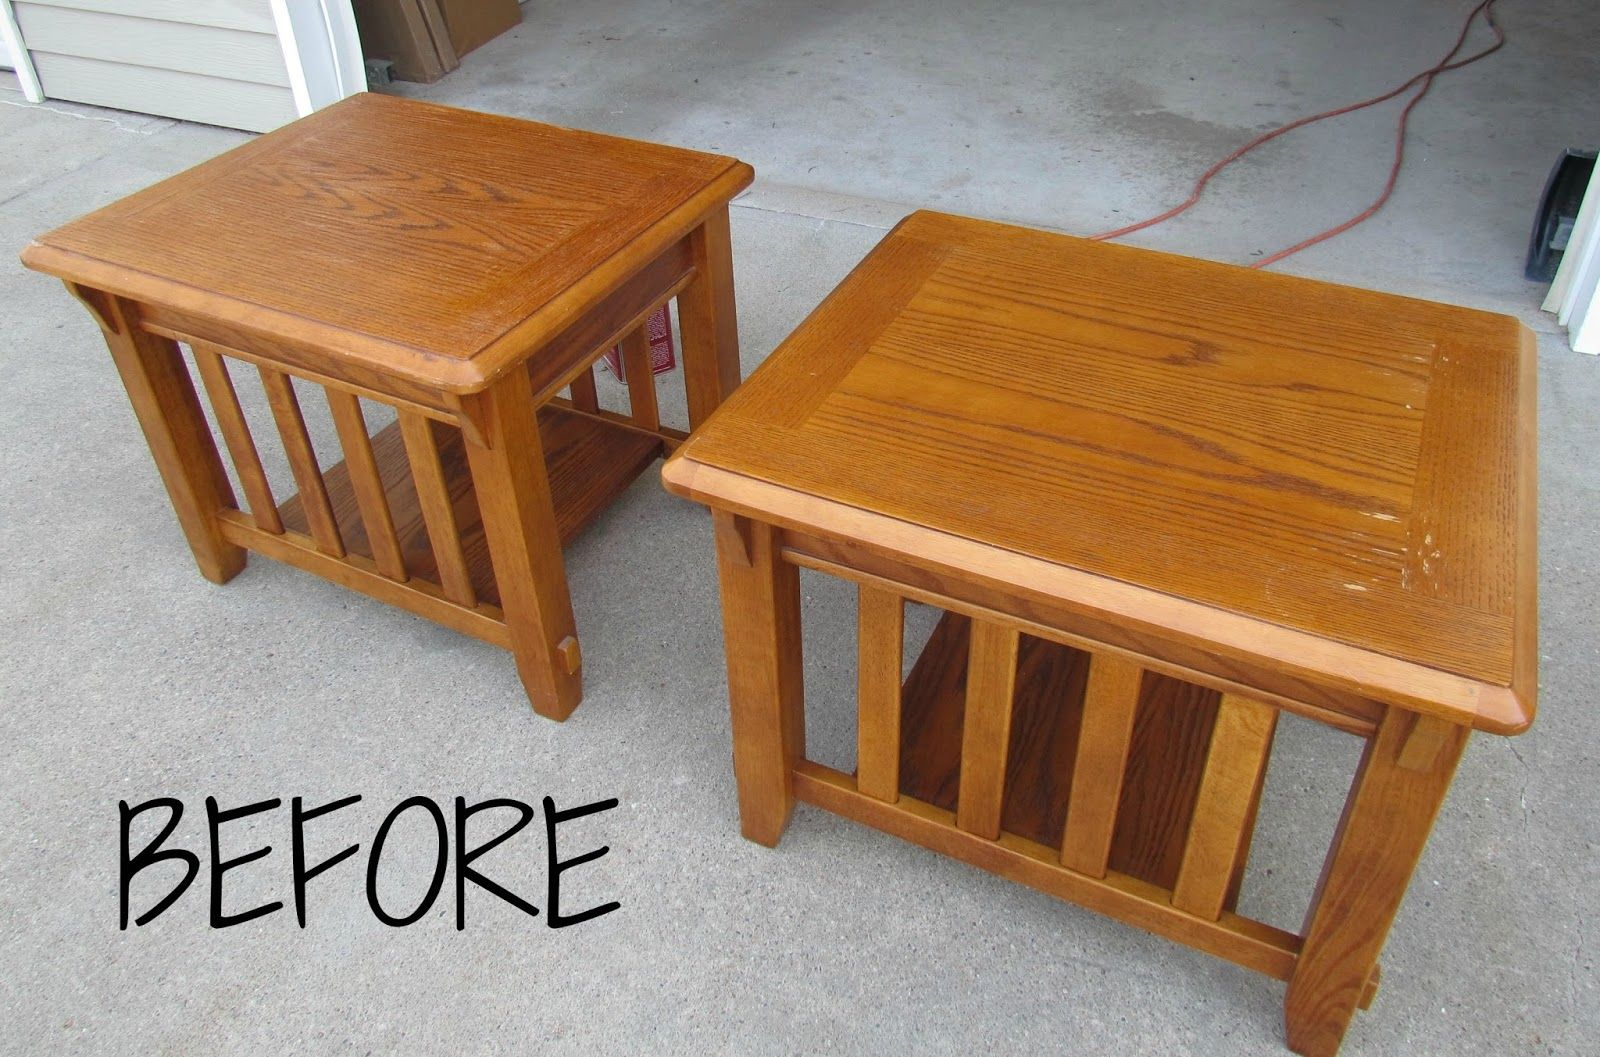 Golden Oak Coffee Table Sets The Had Taken A Turn For Orange Other Than